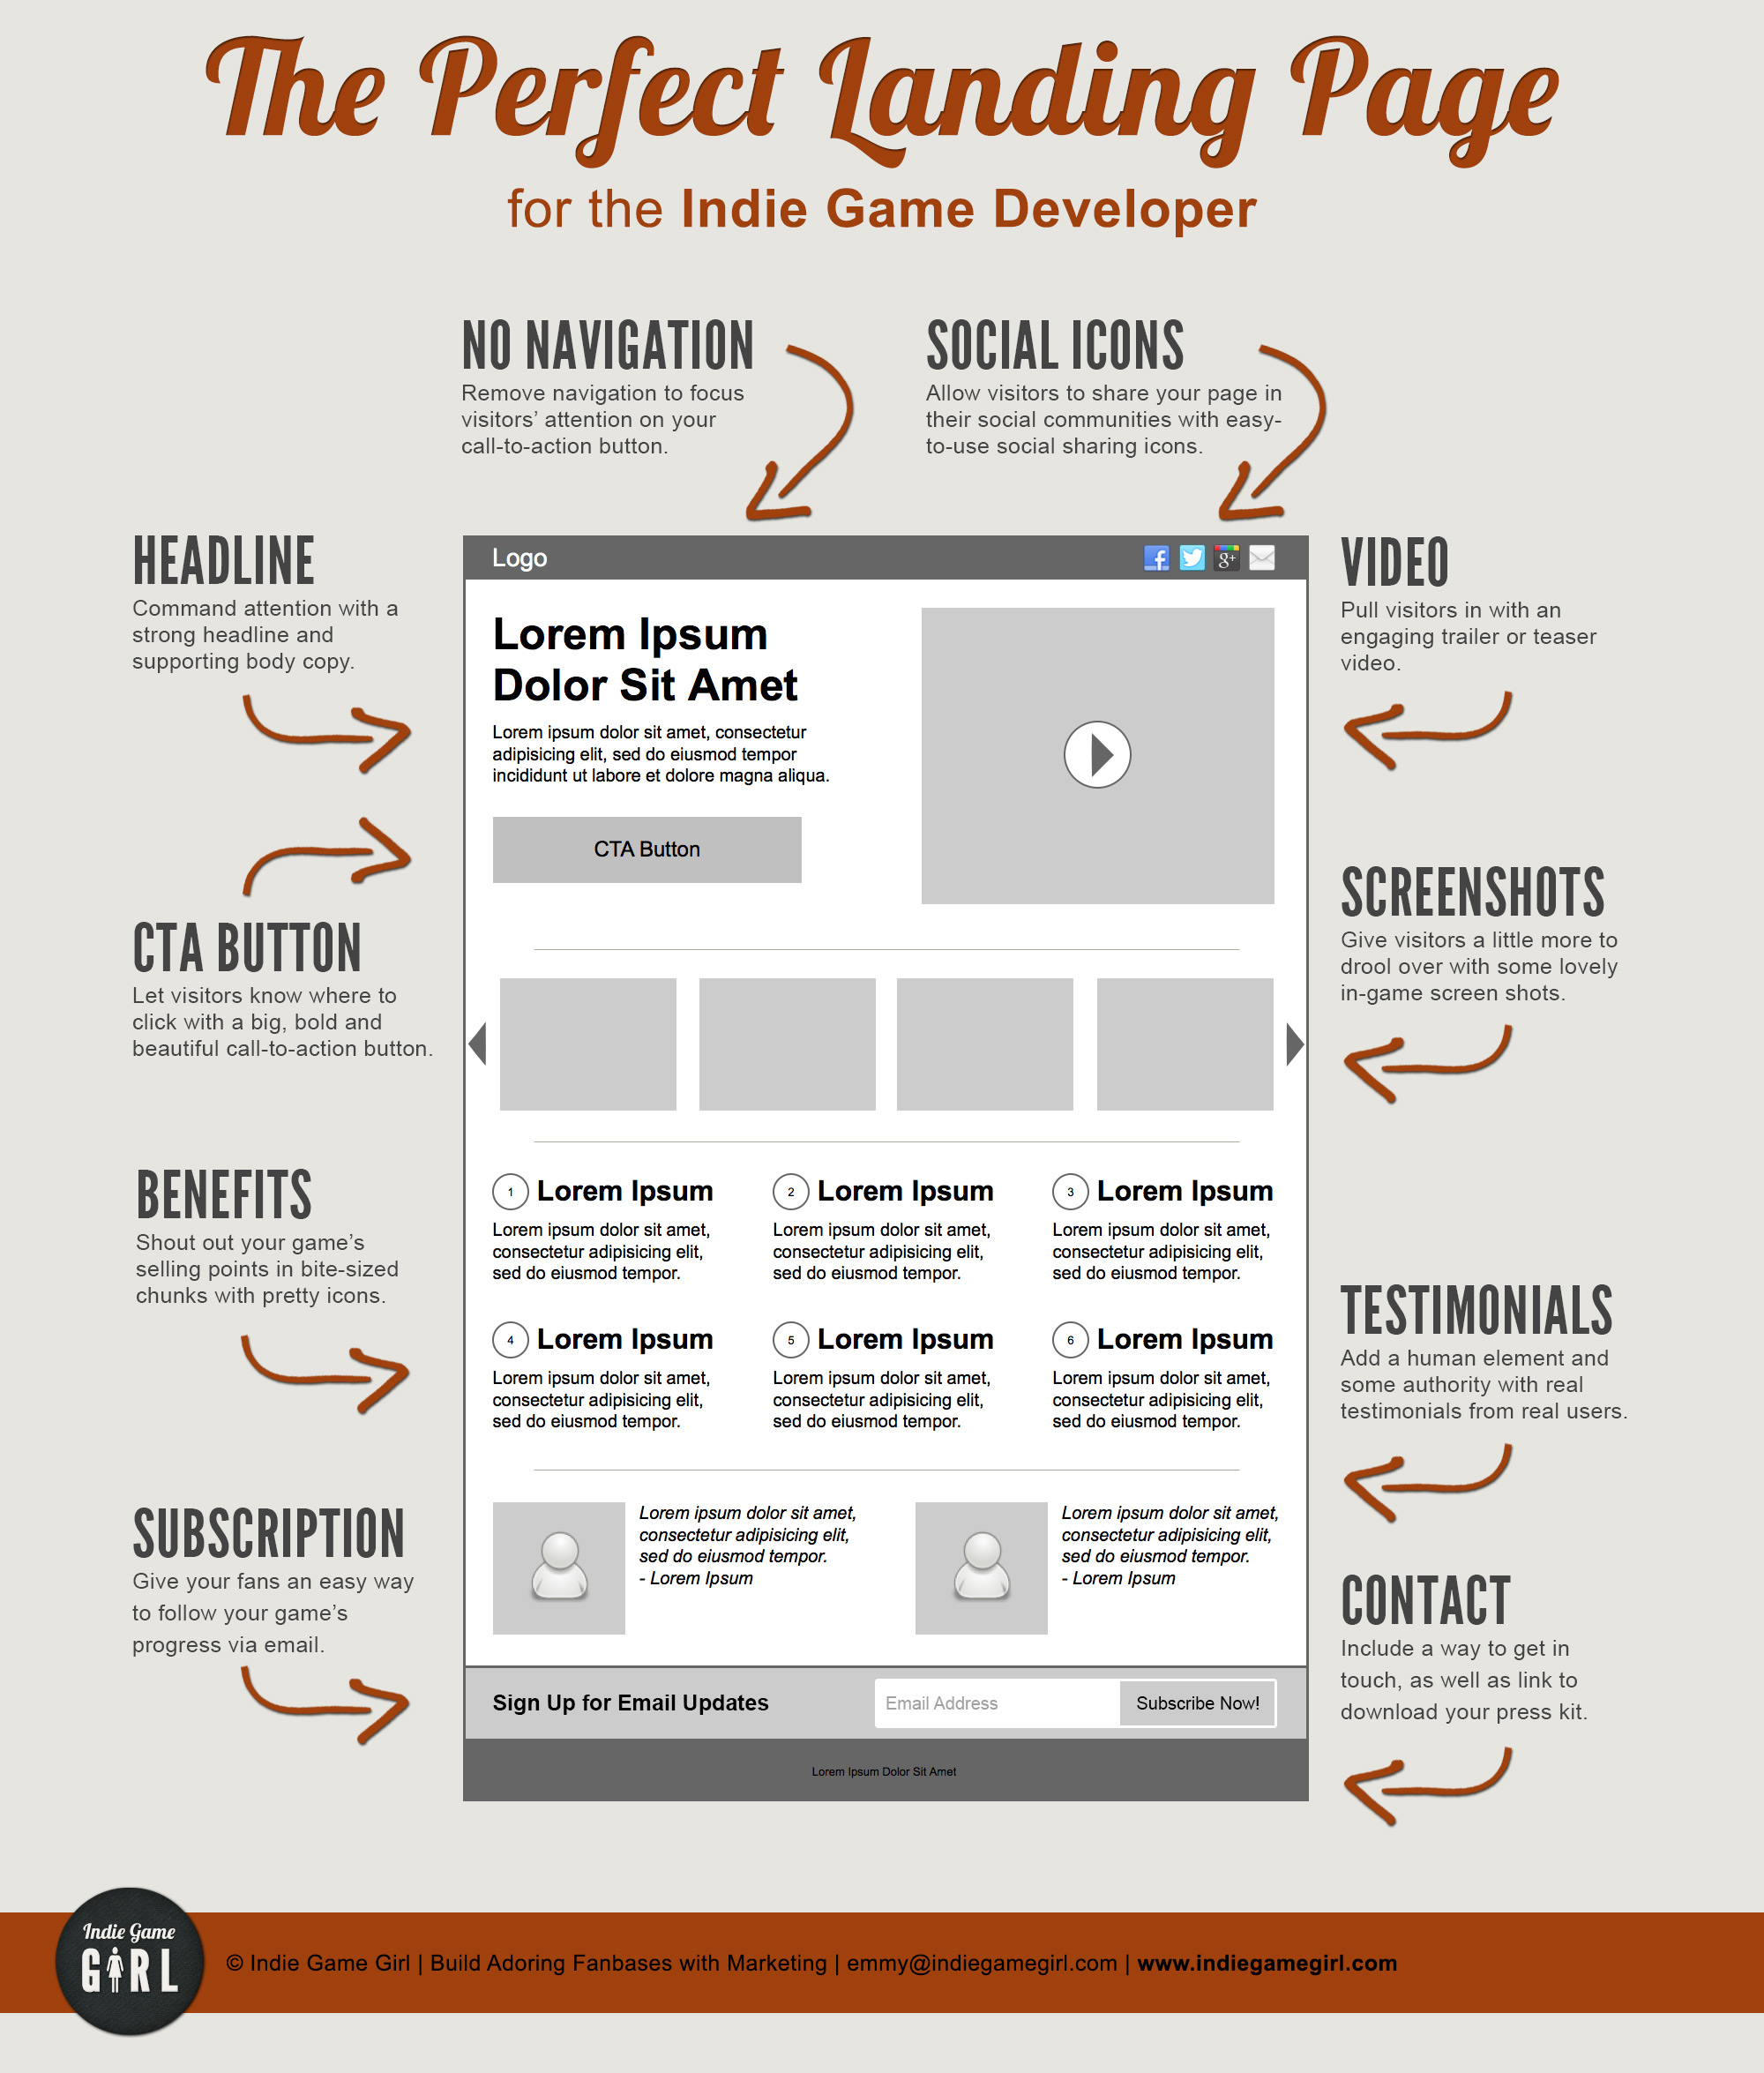 The perfect landing page design for an indie game developer's game.